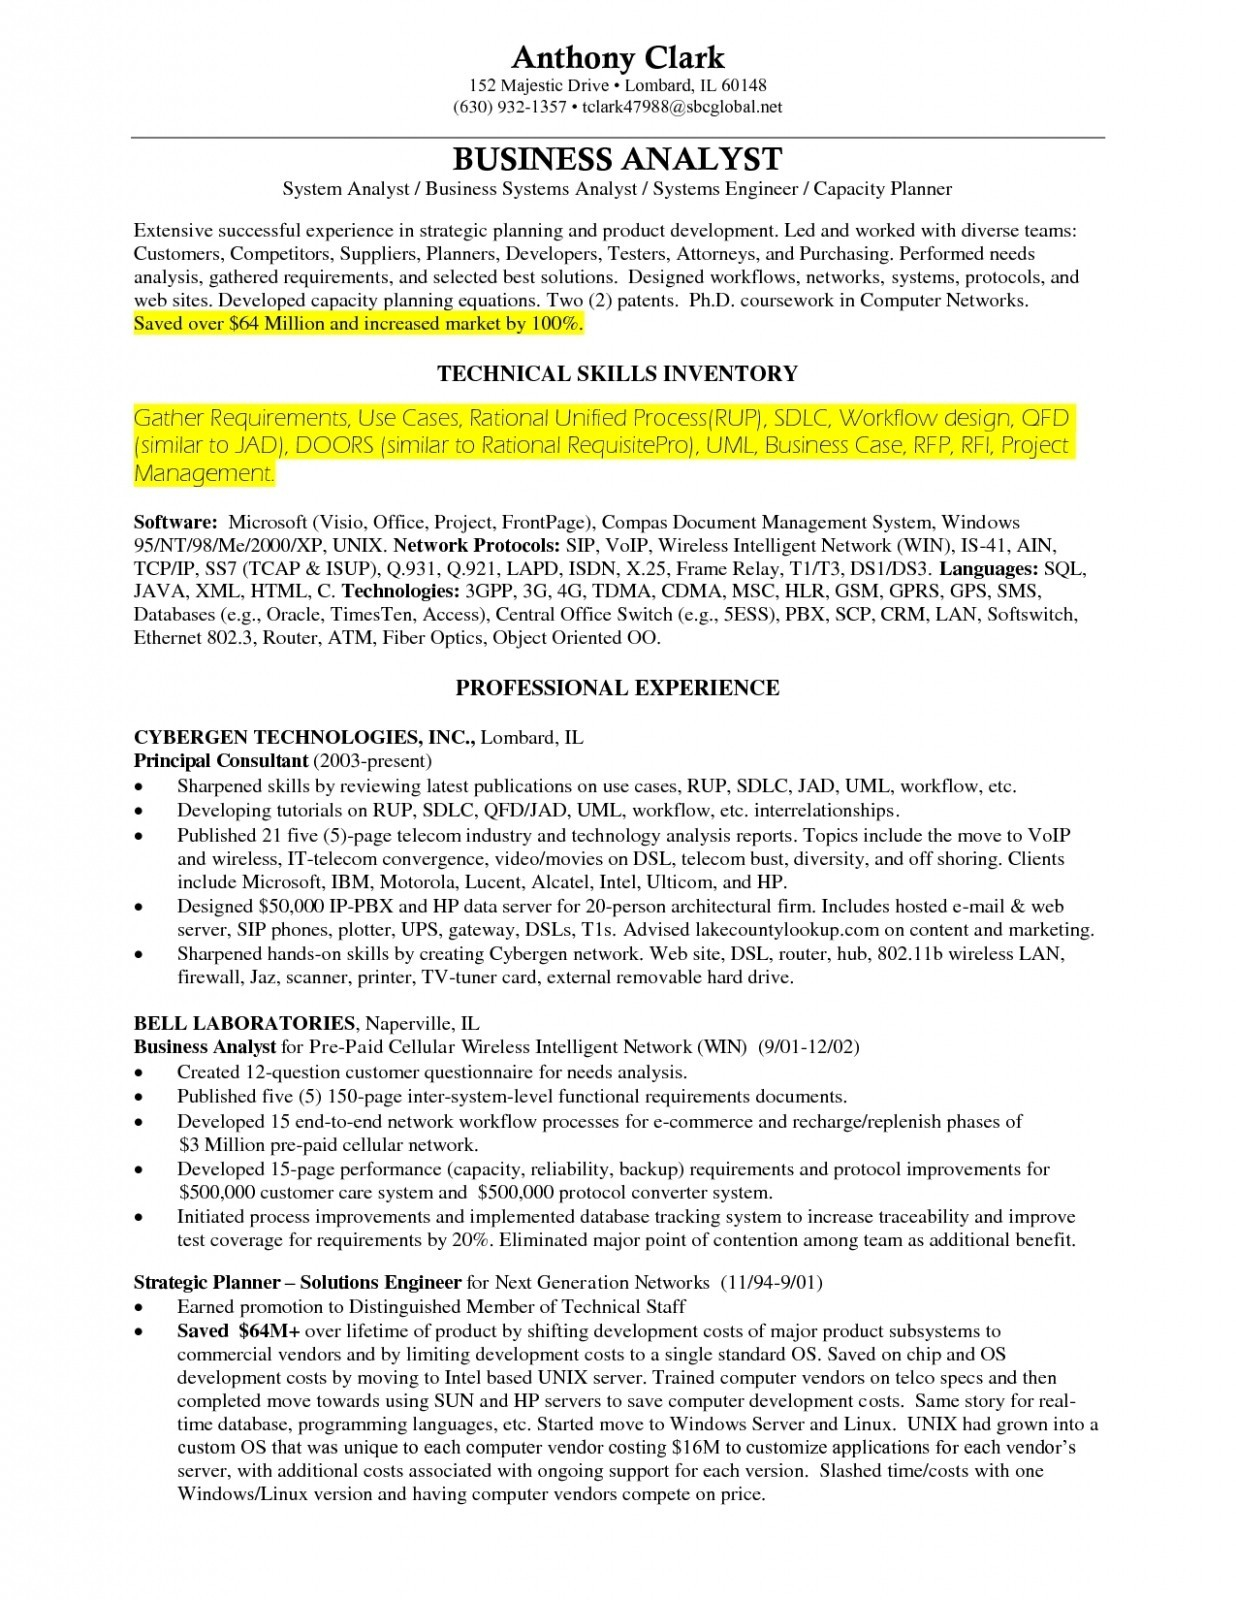 Business Analyst Resume Pdf - Business Systems Analyst Resume Sample New Business Analyst Cv